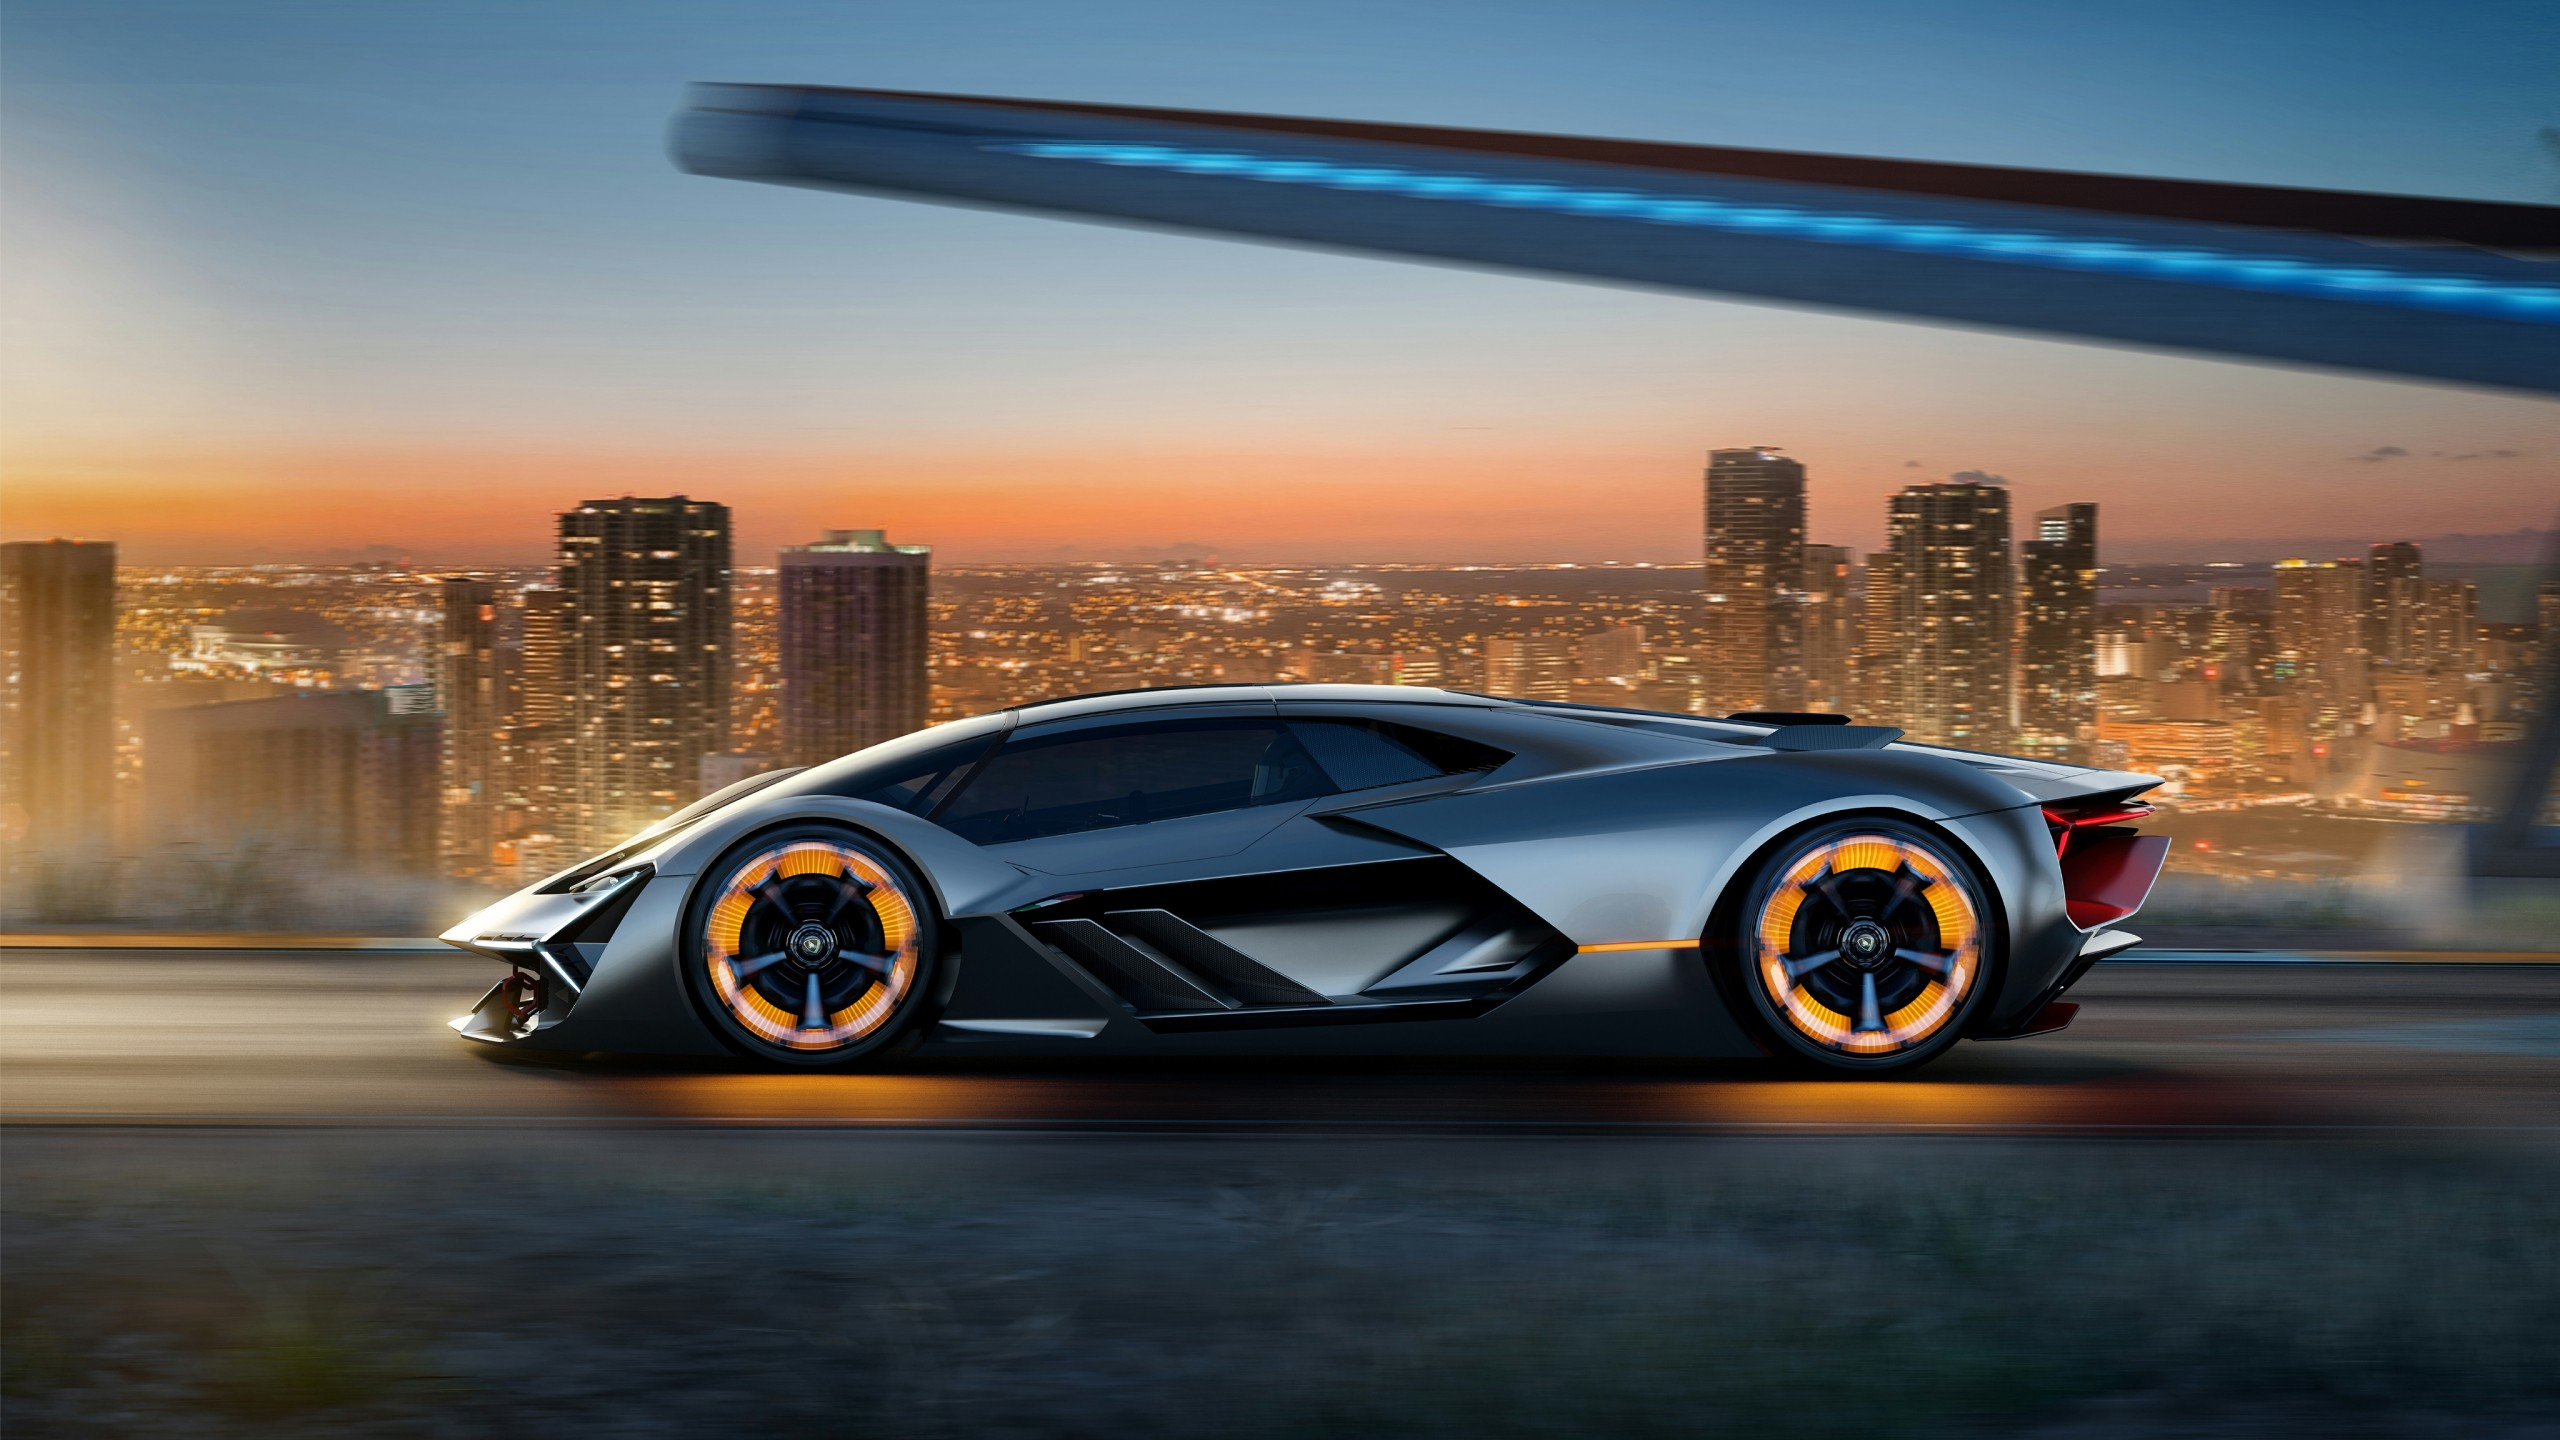 Lamborghini Terzo Millennio Ev Supercar 4k 3 Wallpaper Hd Car